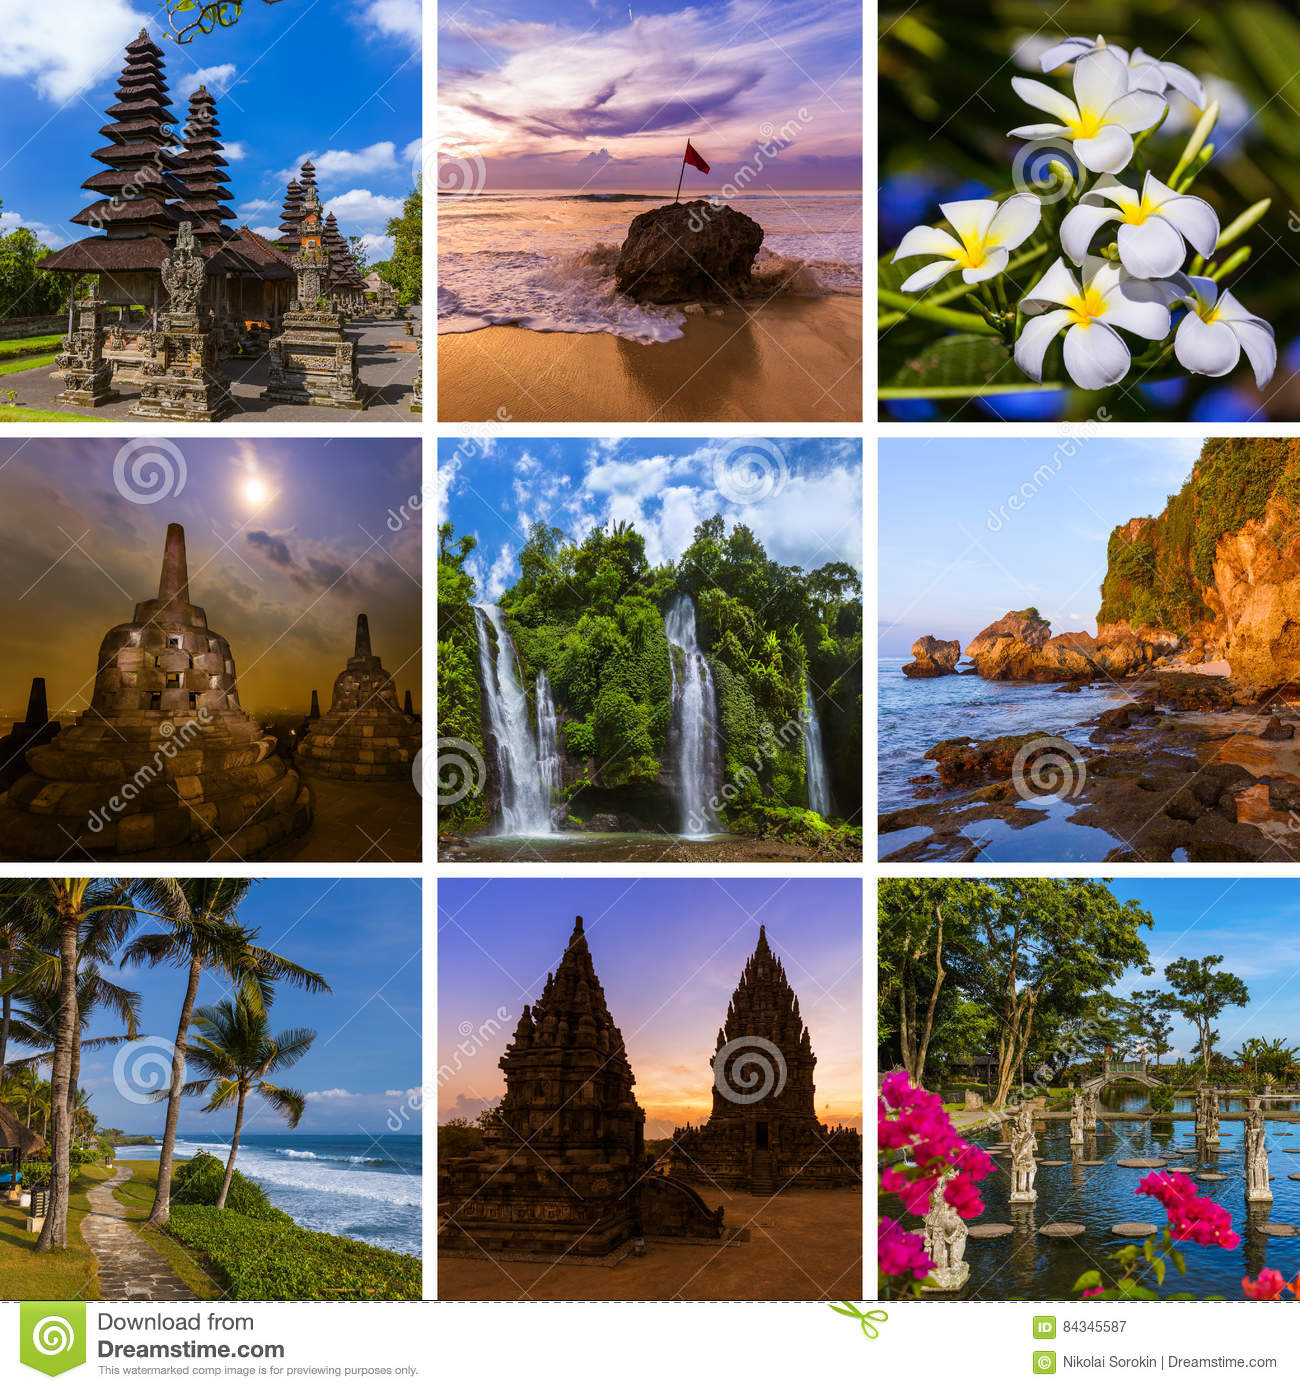 Collage Of Bali Indonesia Travel Images My Photos Stock